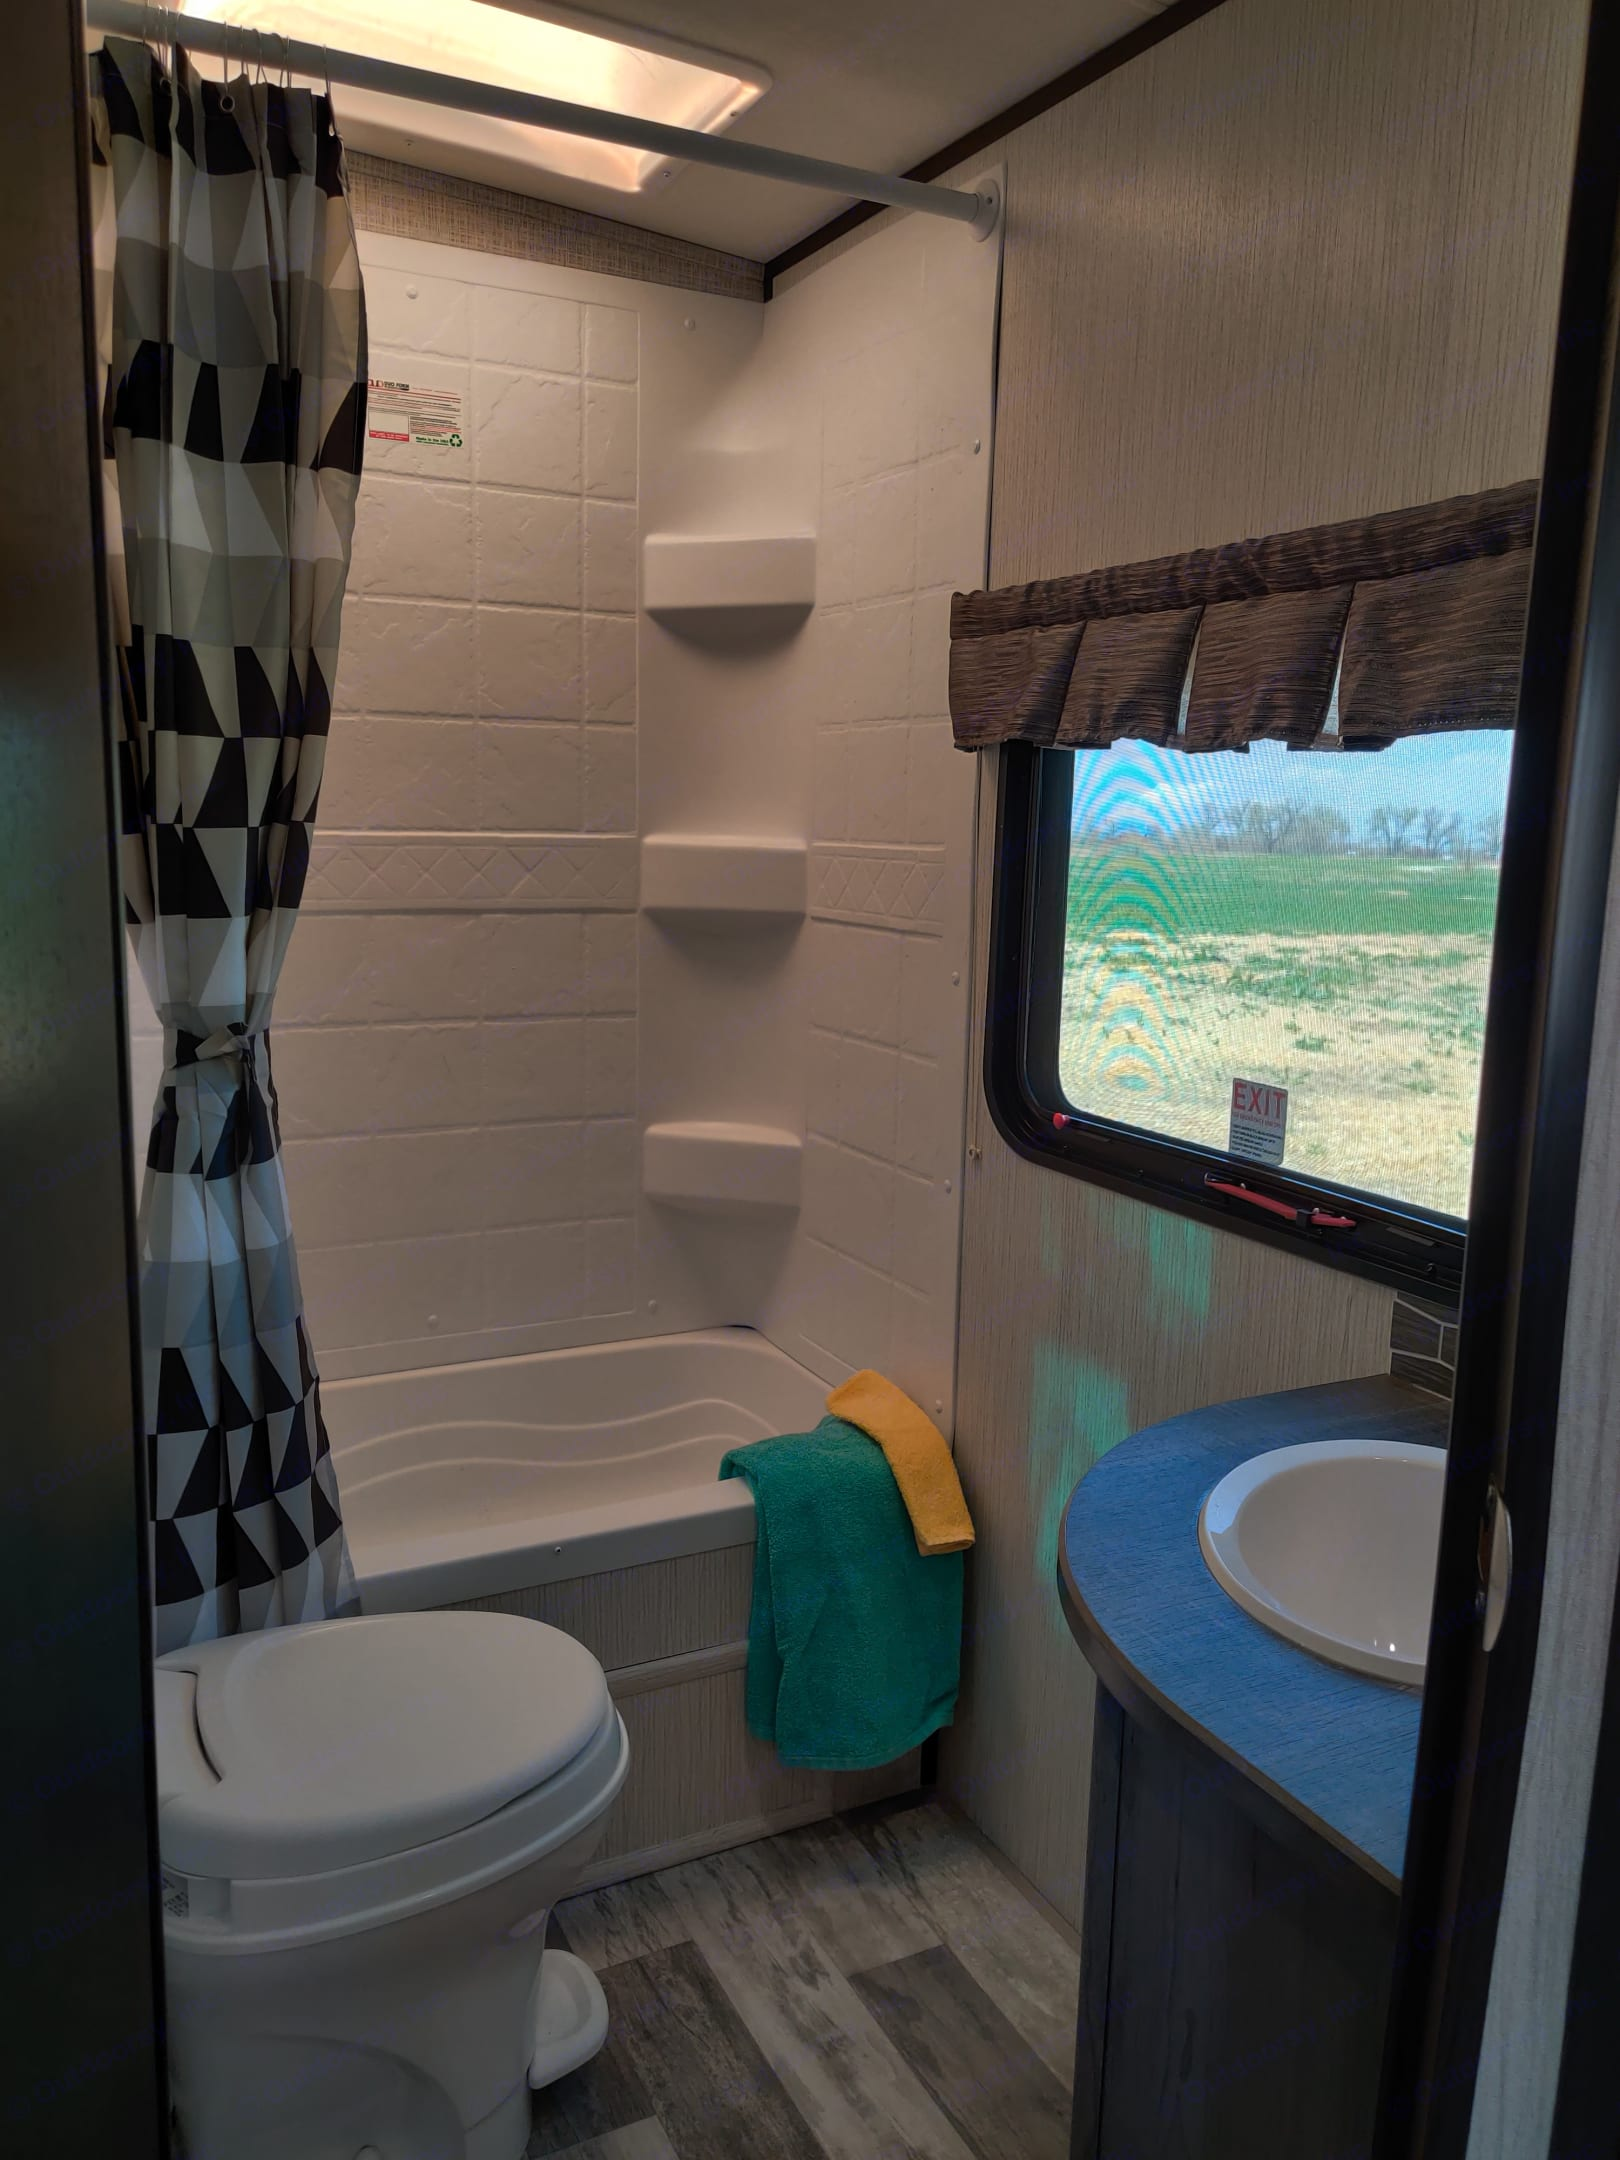 Full bathroom with shower and small tub. Heartland Other 2020